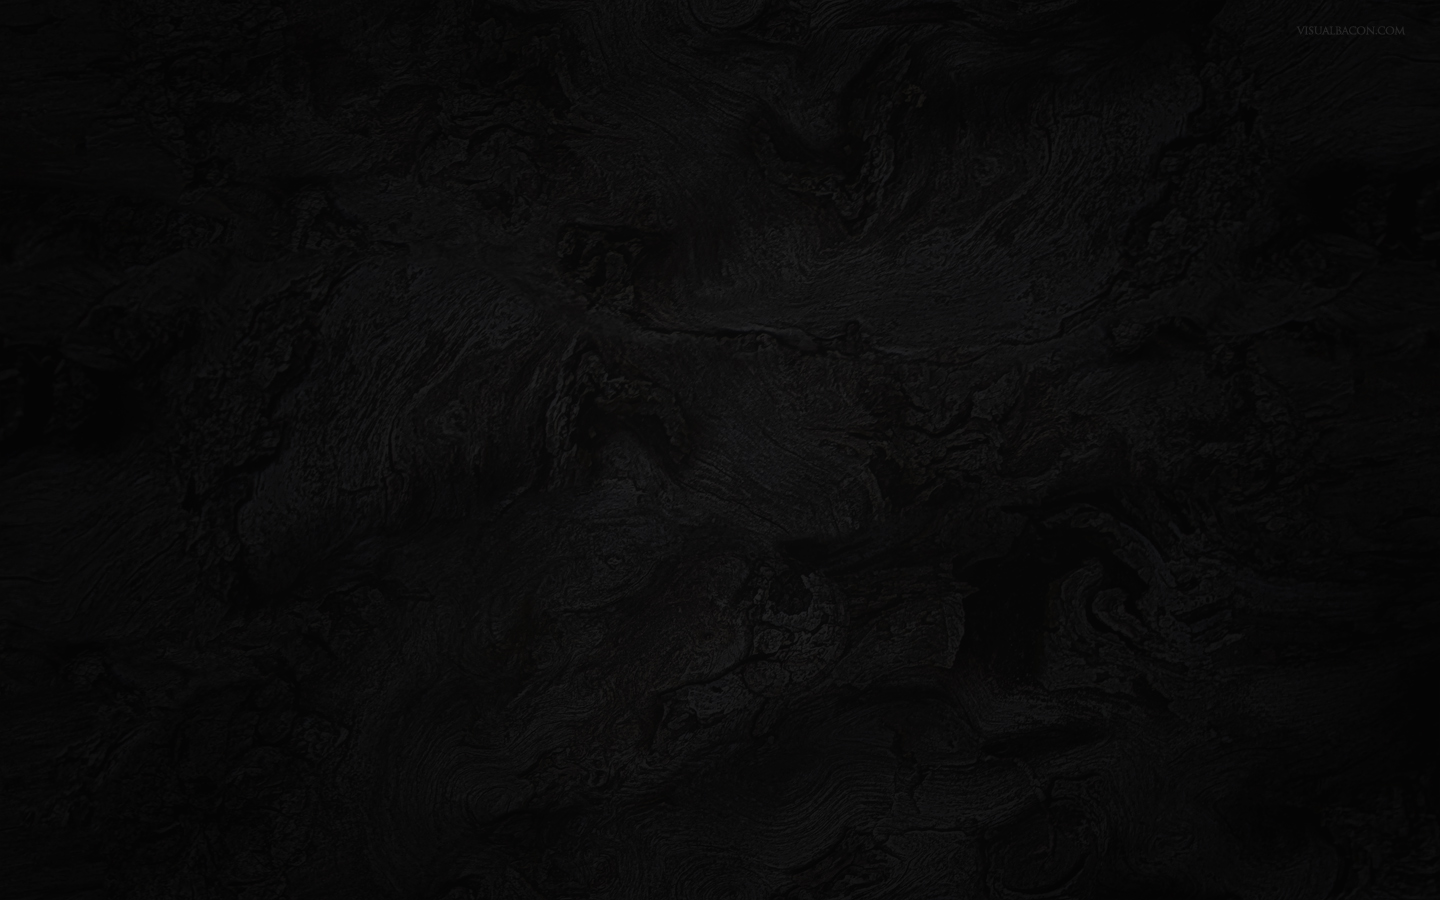 Dark Grey Backgrounds Textures The Art Mad Wallpapers 1440x900